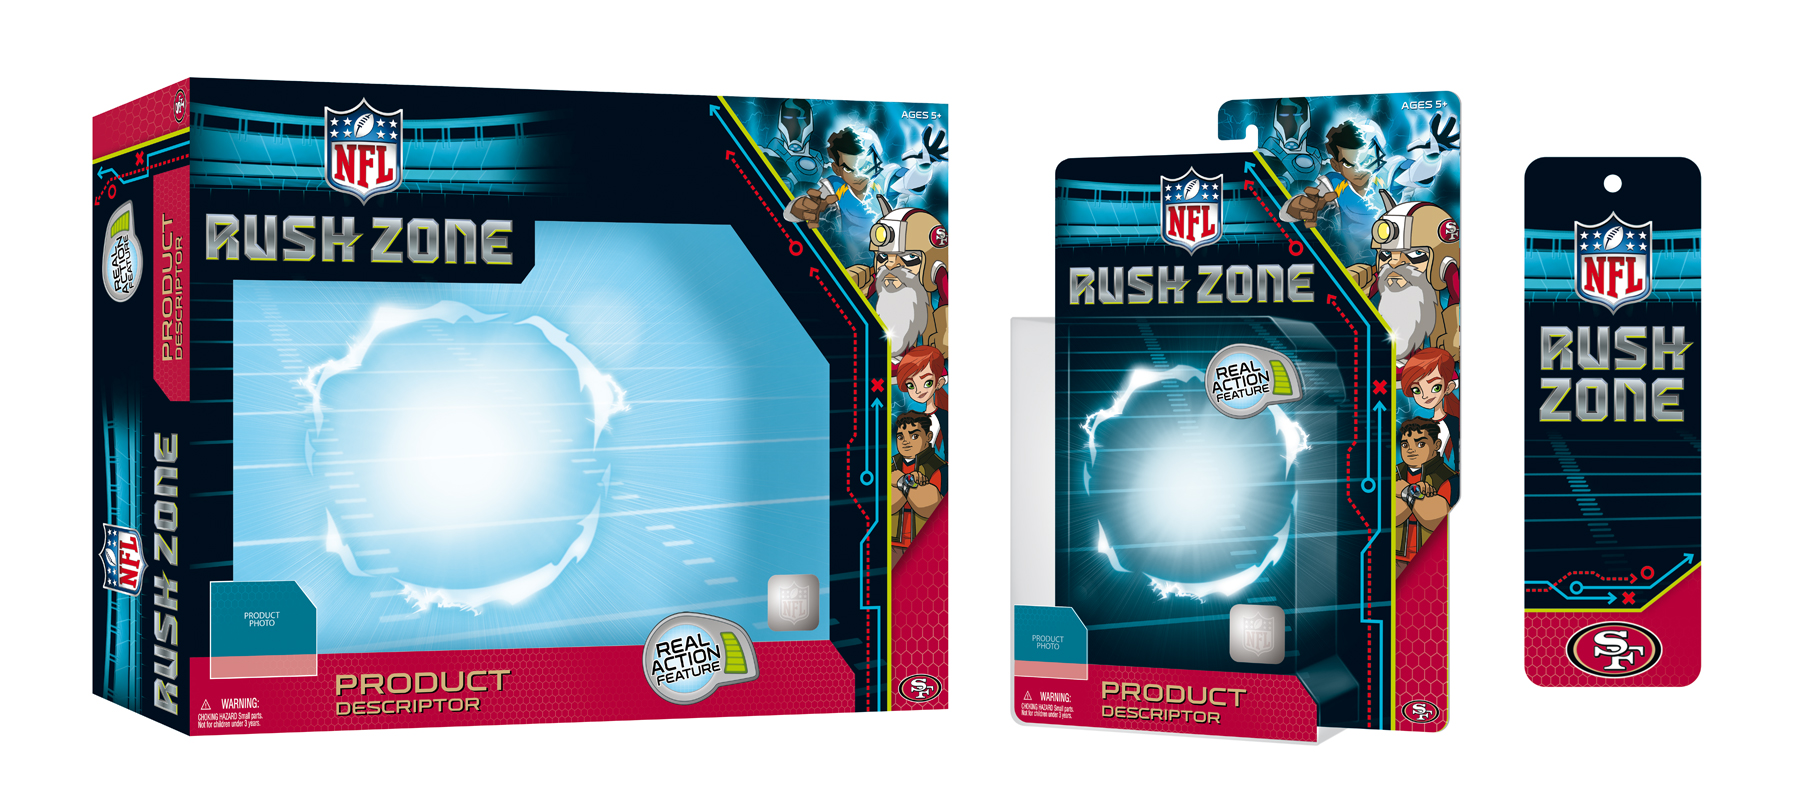 NFL Rush Zone Packaging - Package Design 3